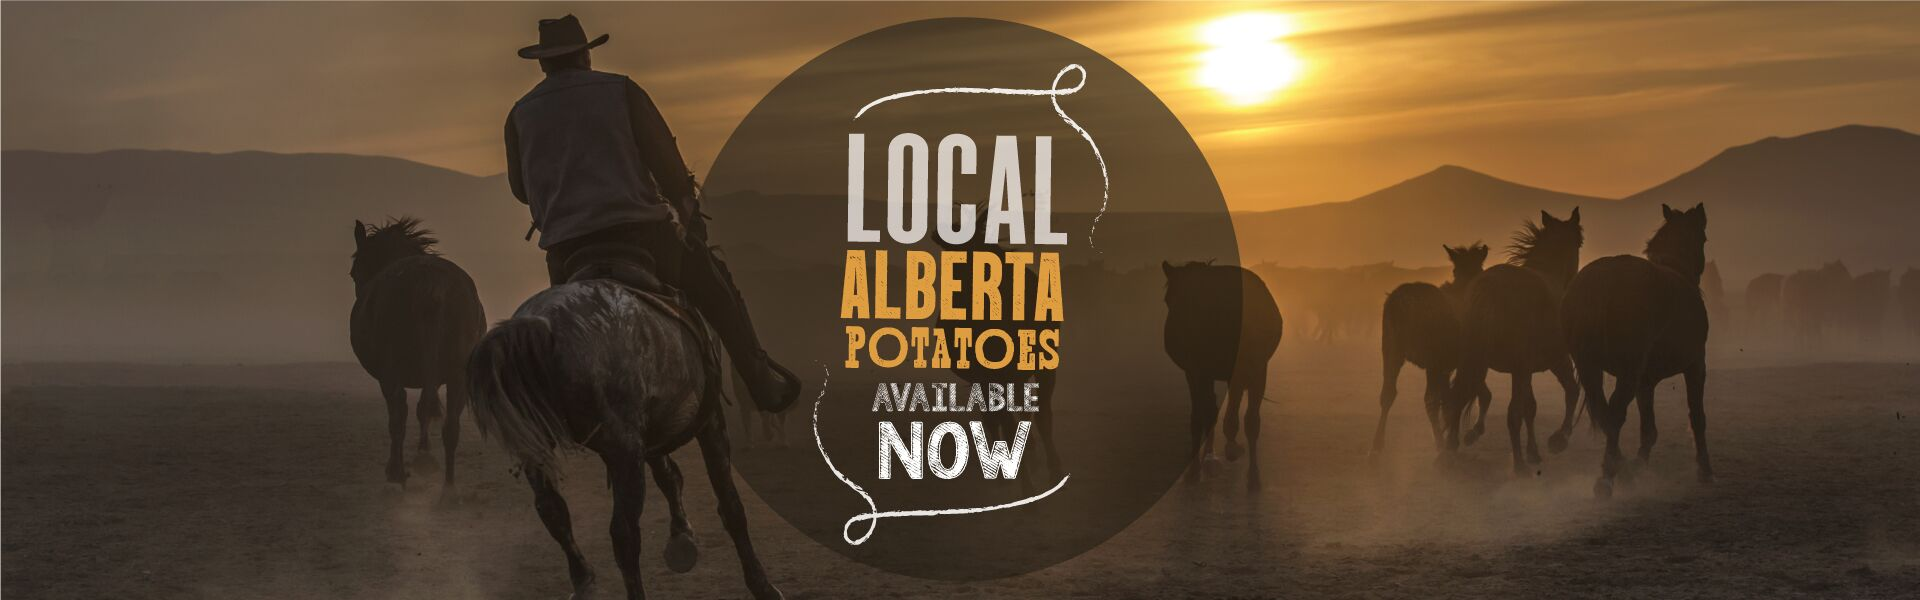 Alberta Potatoes Header